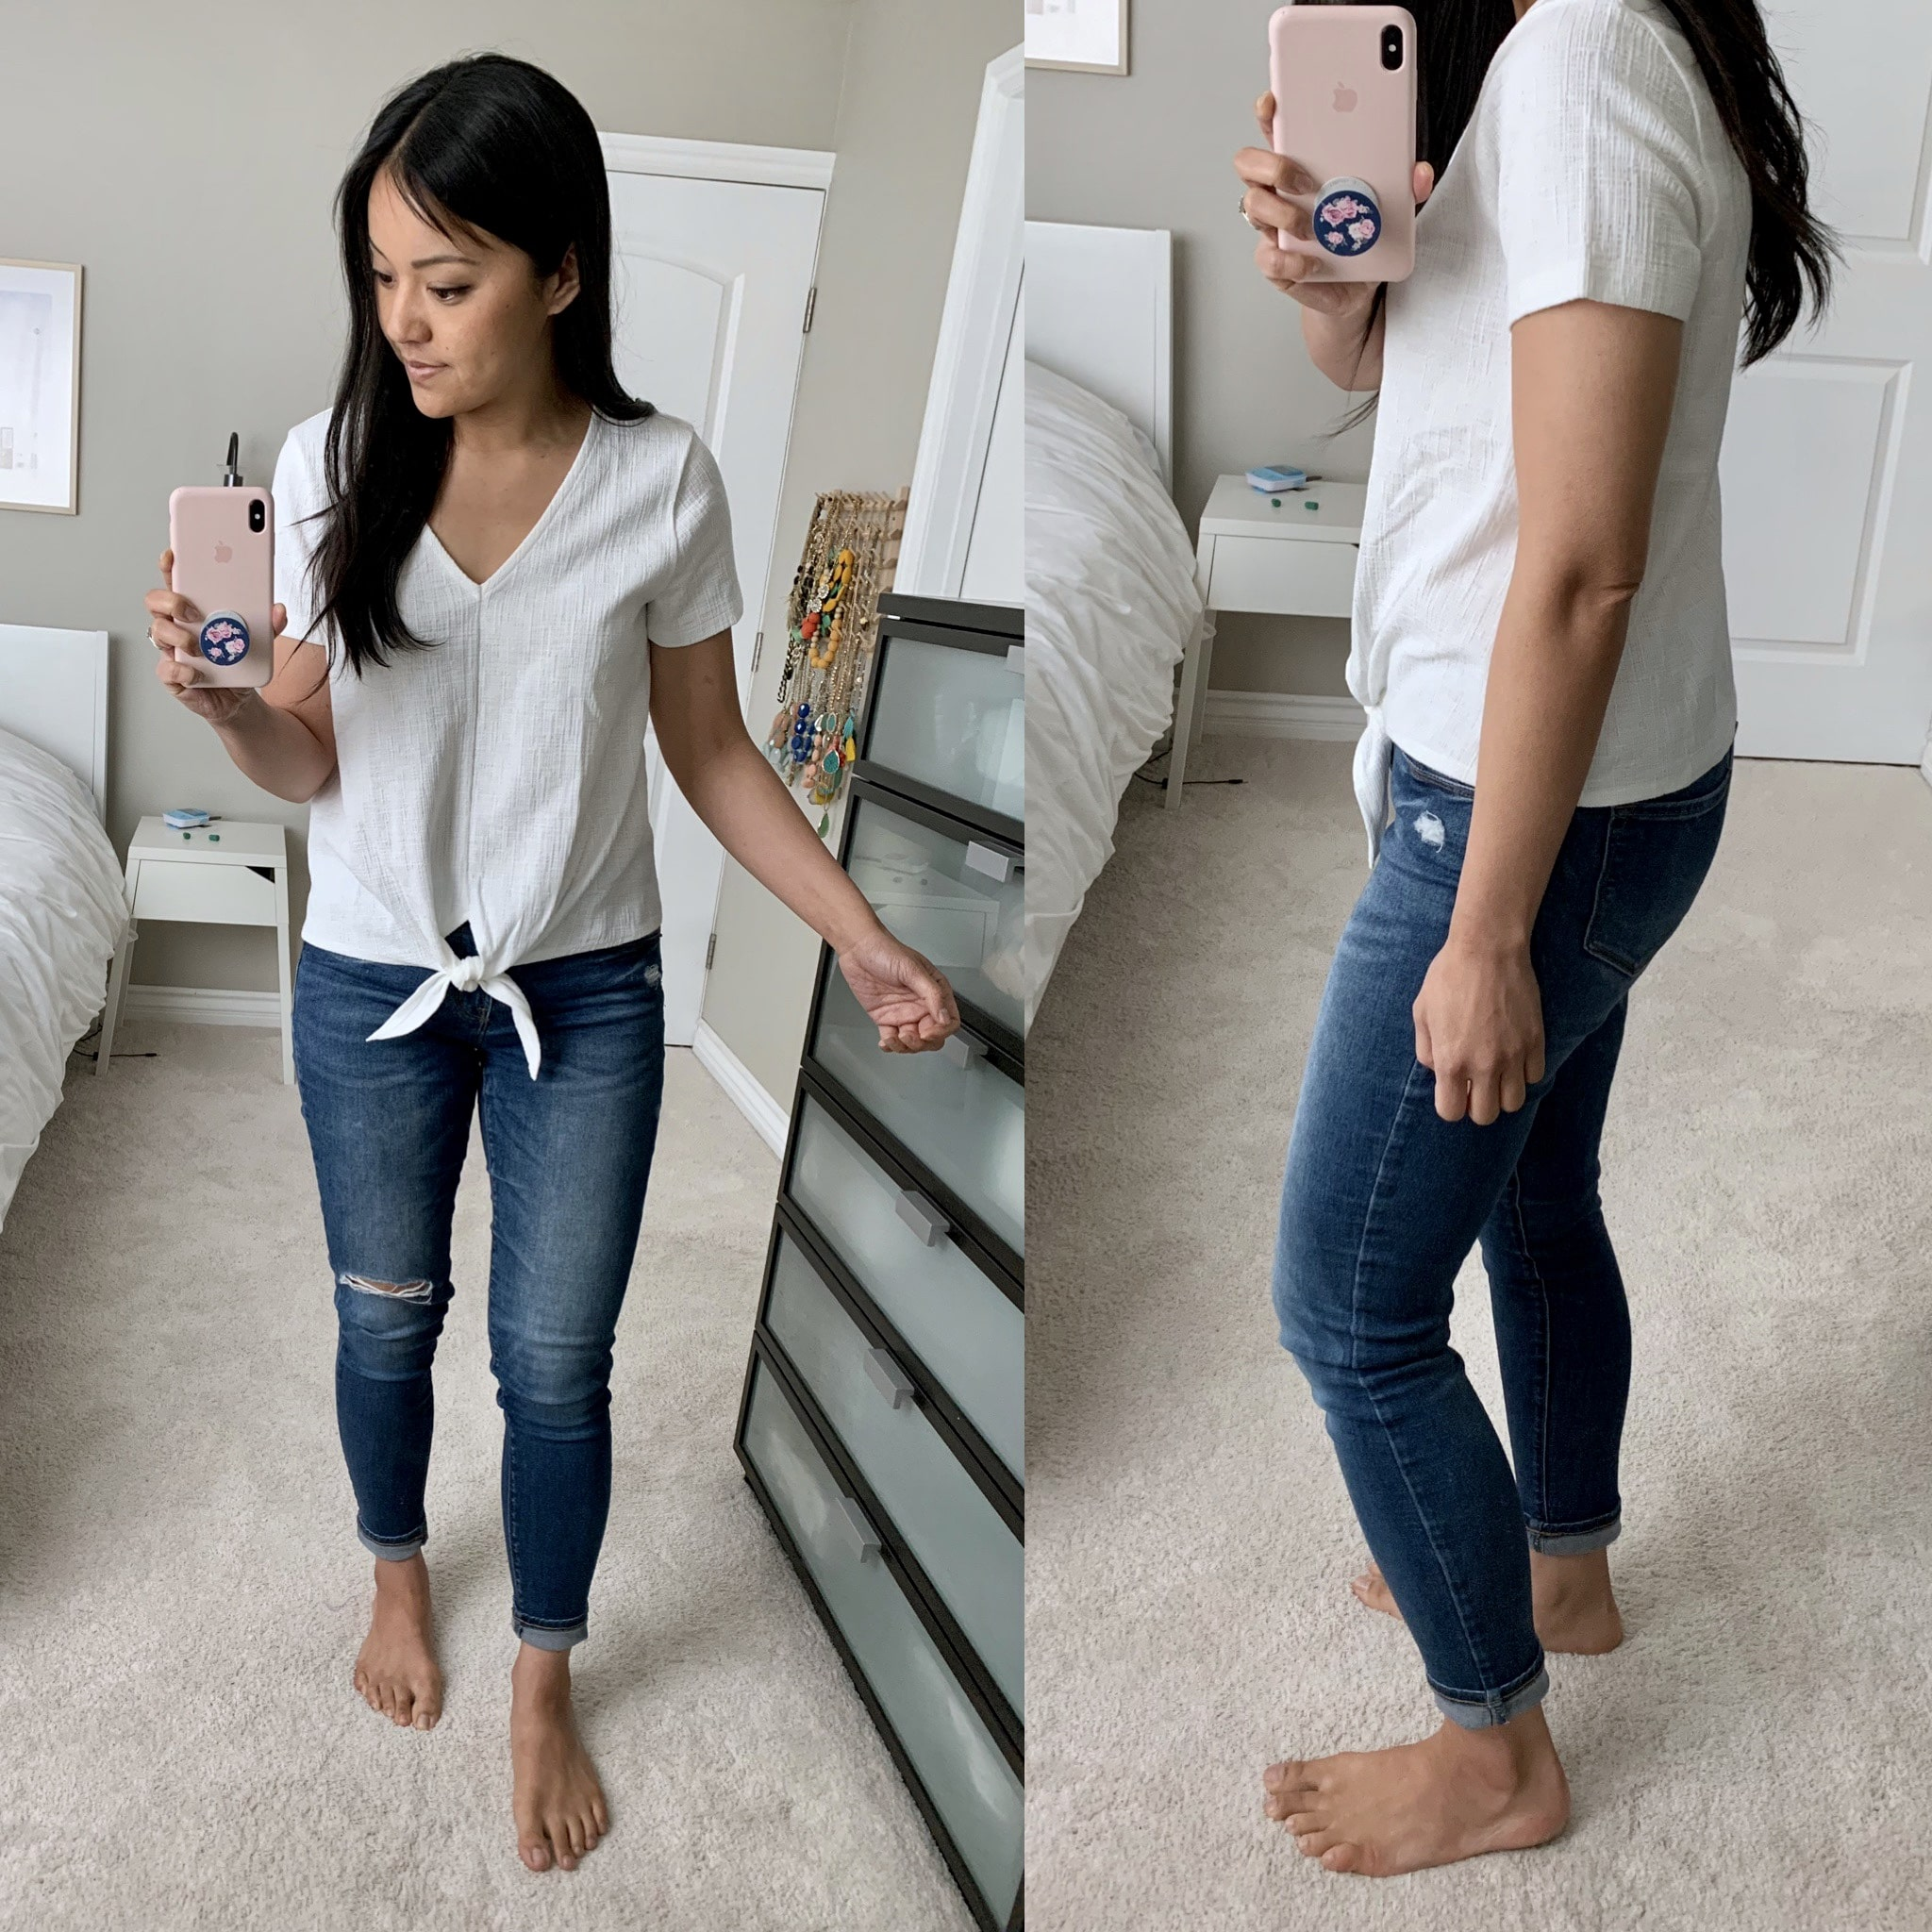 j.crew factory white knotted top reviews